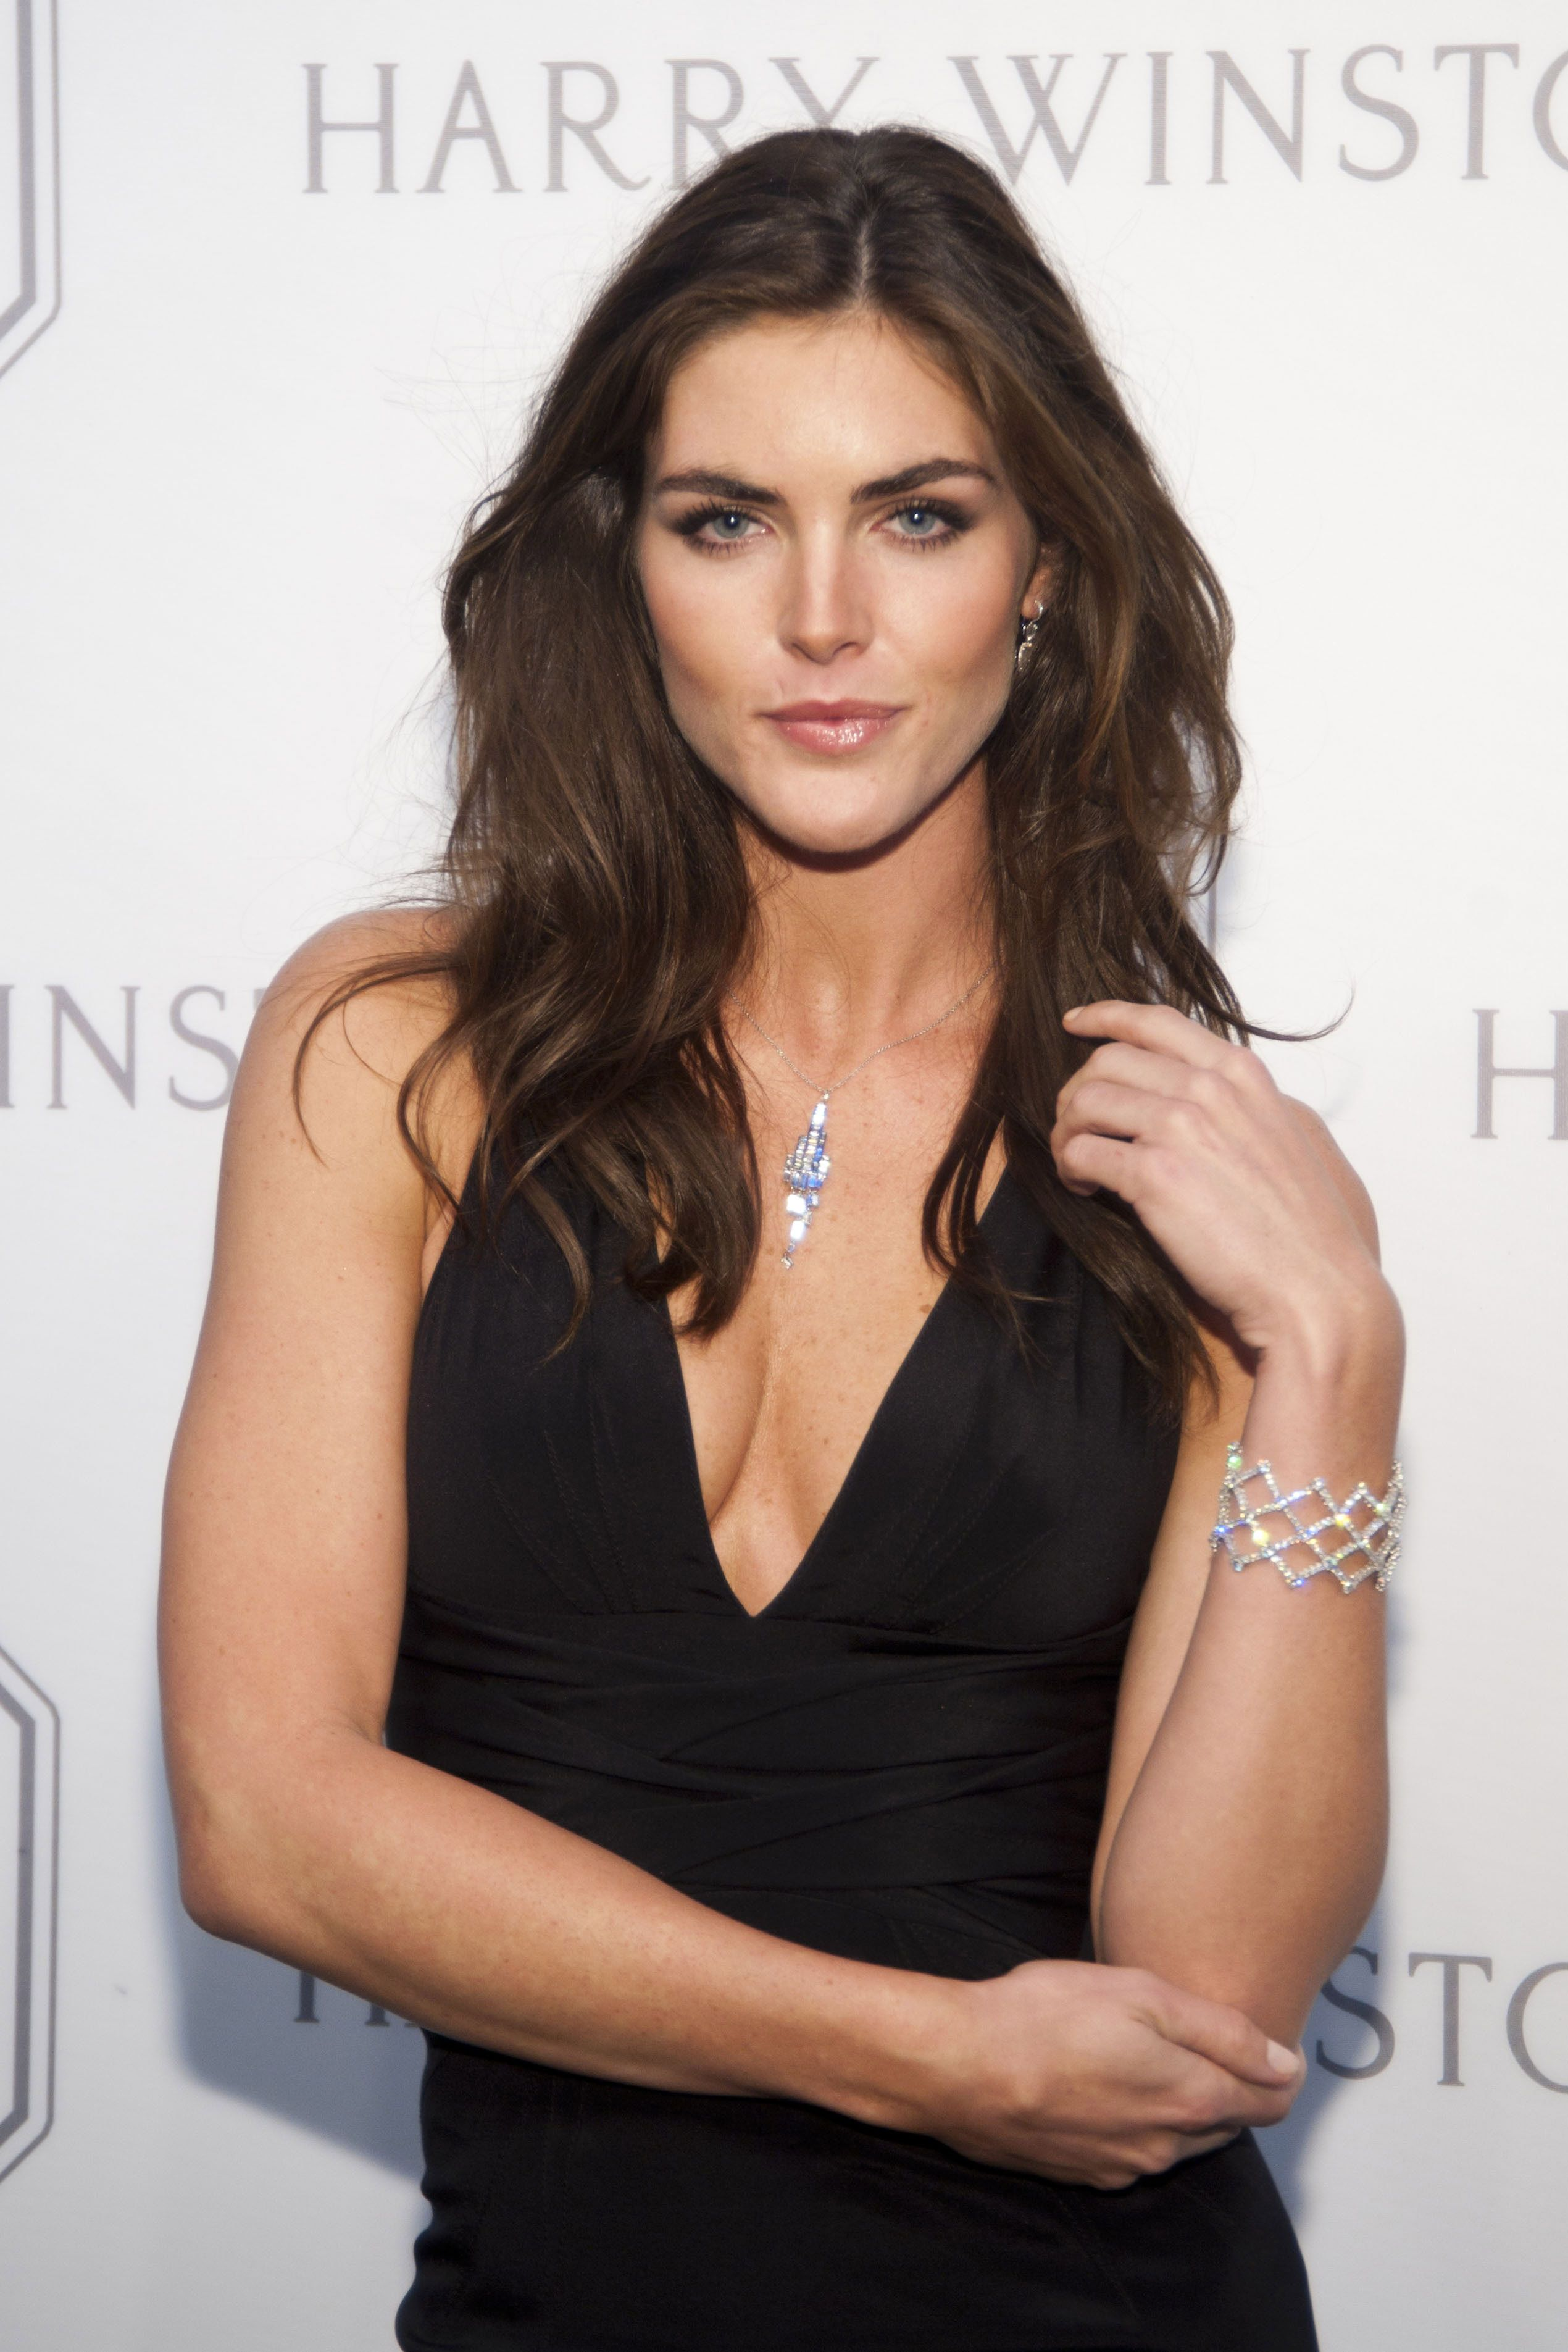 Hot Celebrites Hilary Rhoda naked photo 2017